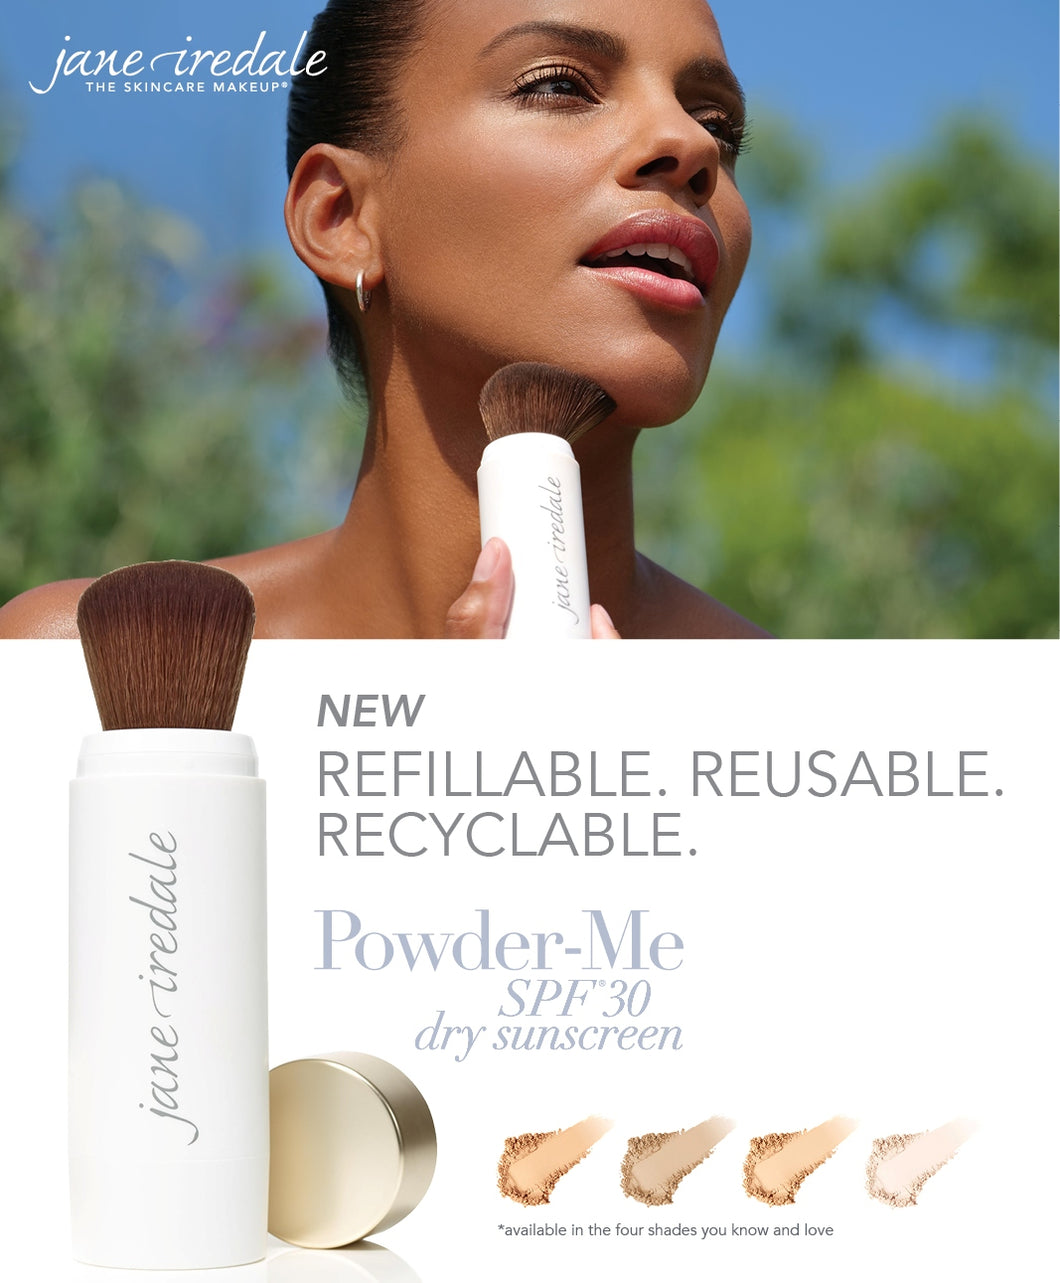 POWDER-ME SPF 30 REFILLABLE BRUSH & 2 REFILLS